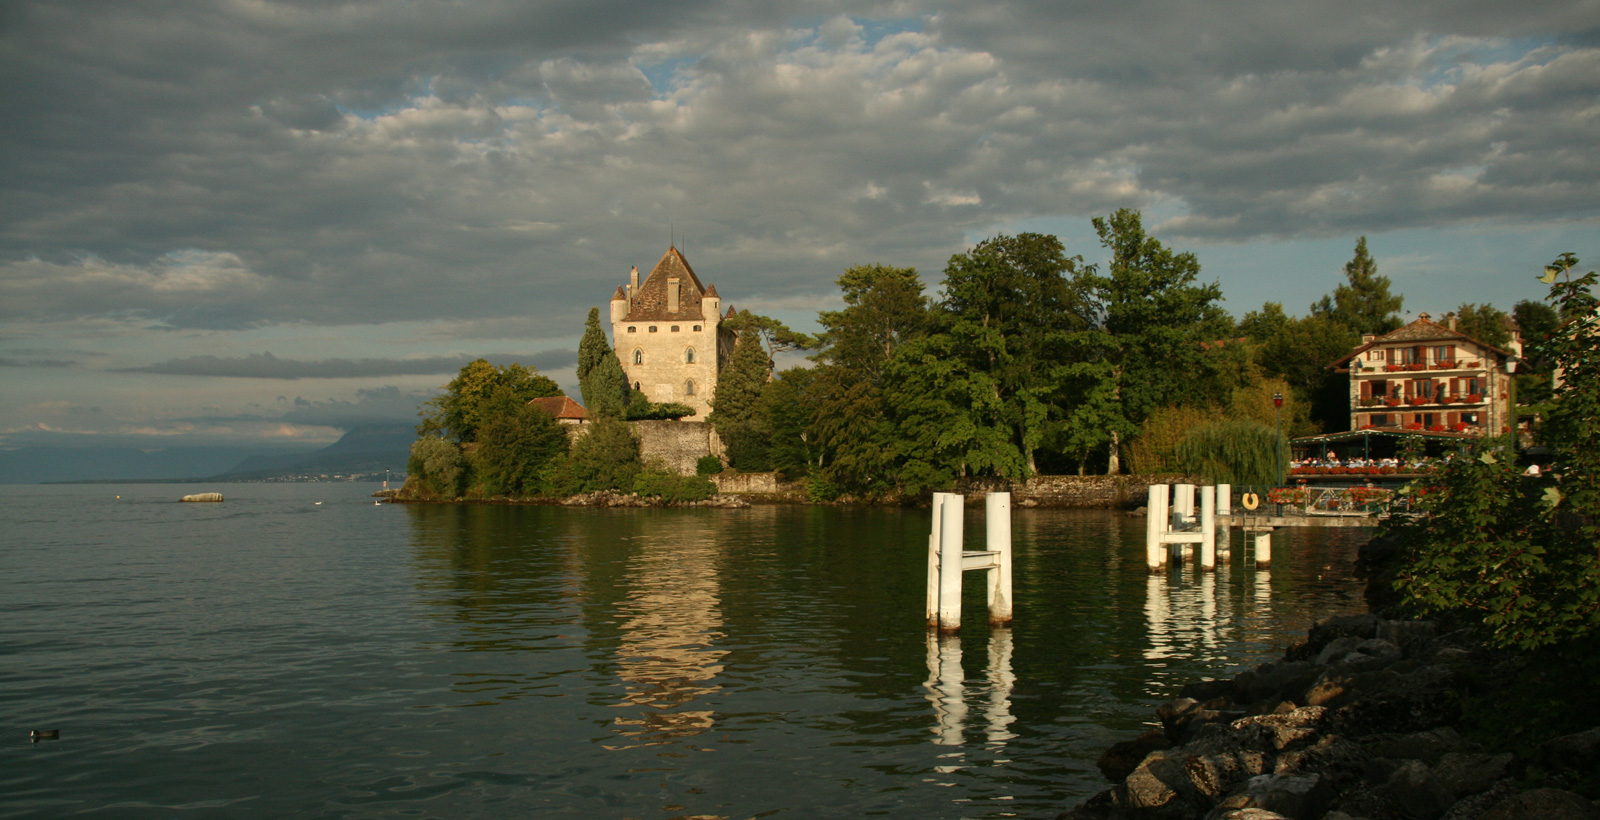 Yvoire castle from the port.